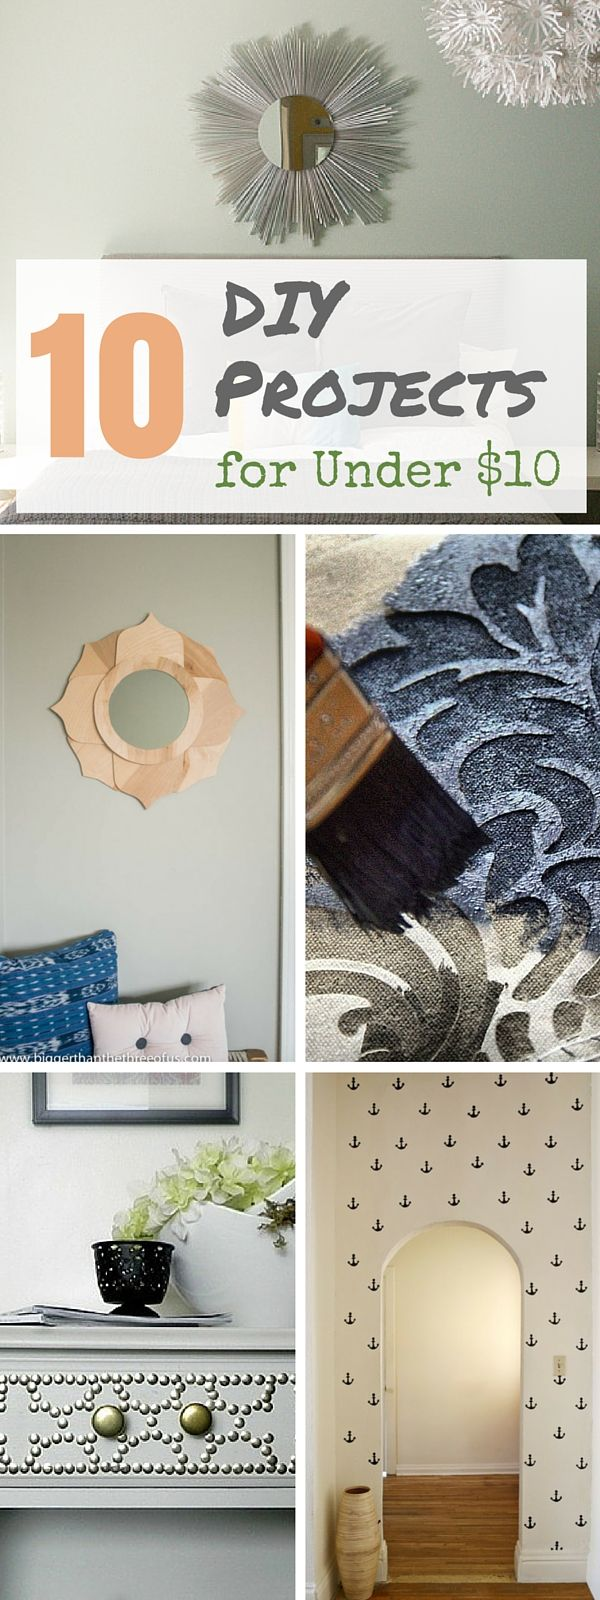 Check out the DIY projects you can